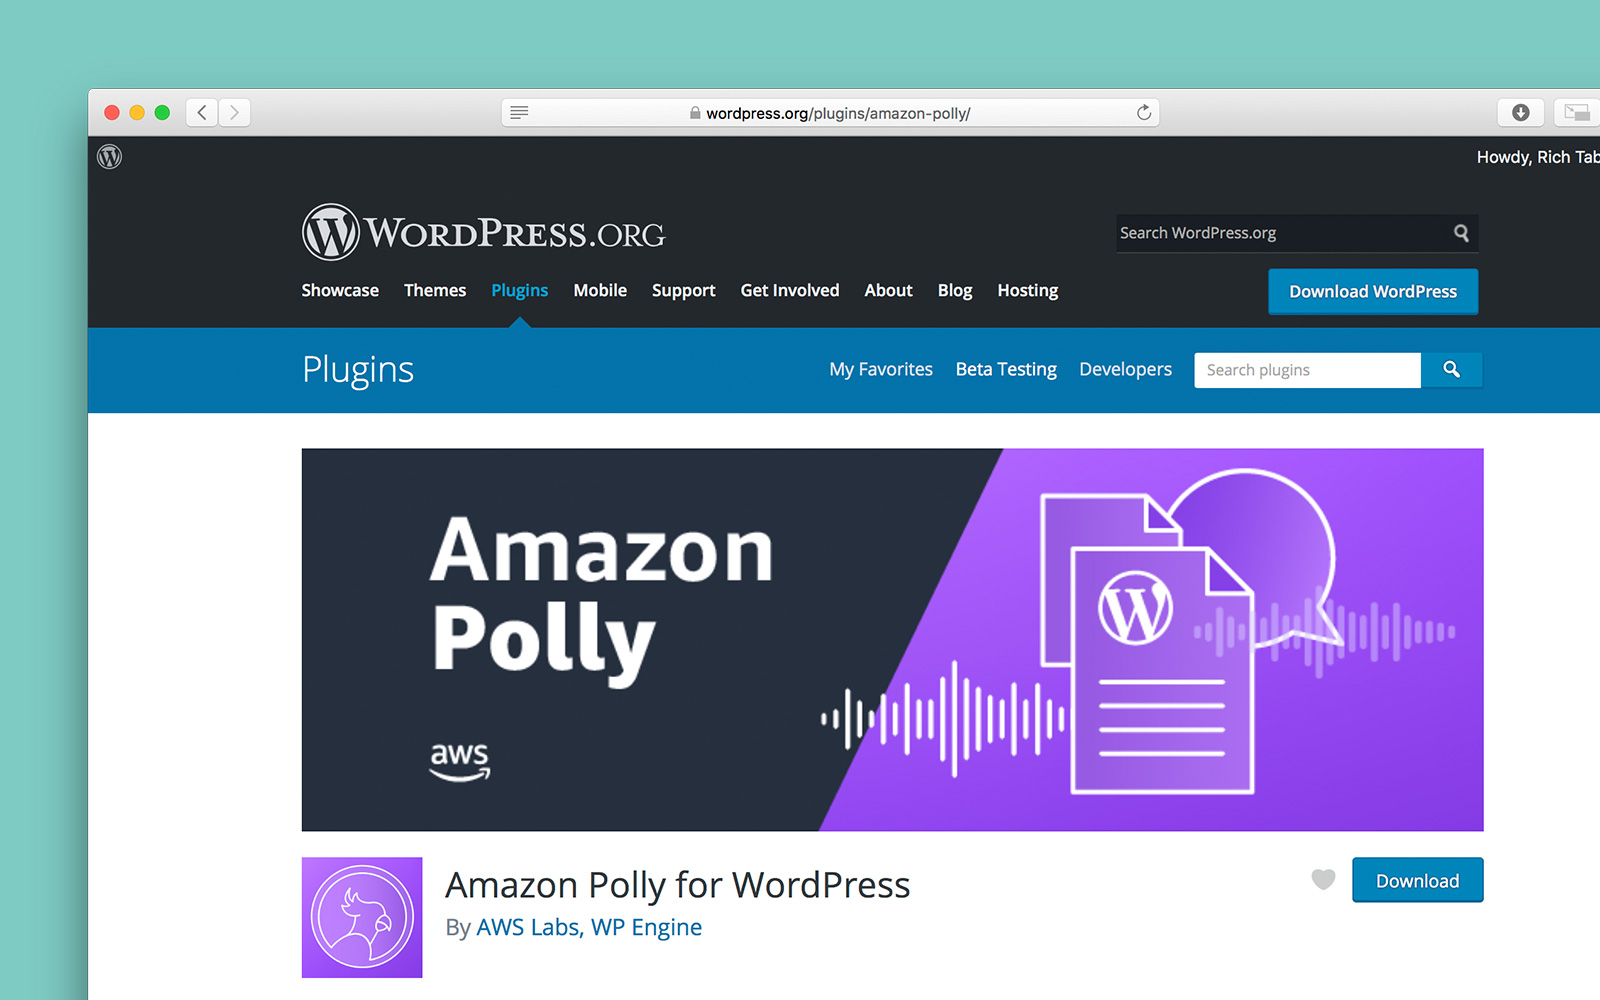 Download the Amazon Polly for WordPress plugin on WordPress.org